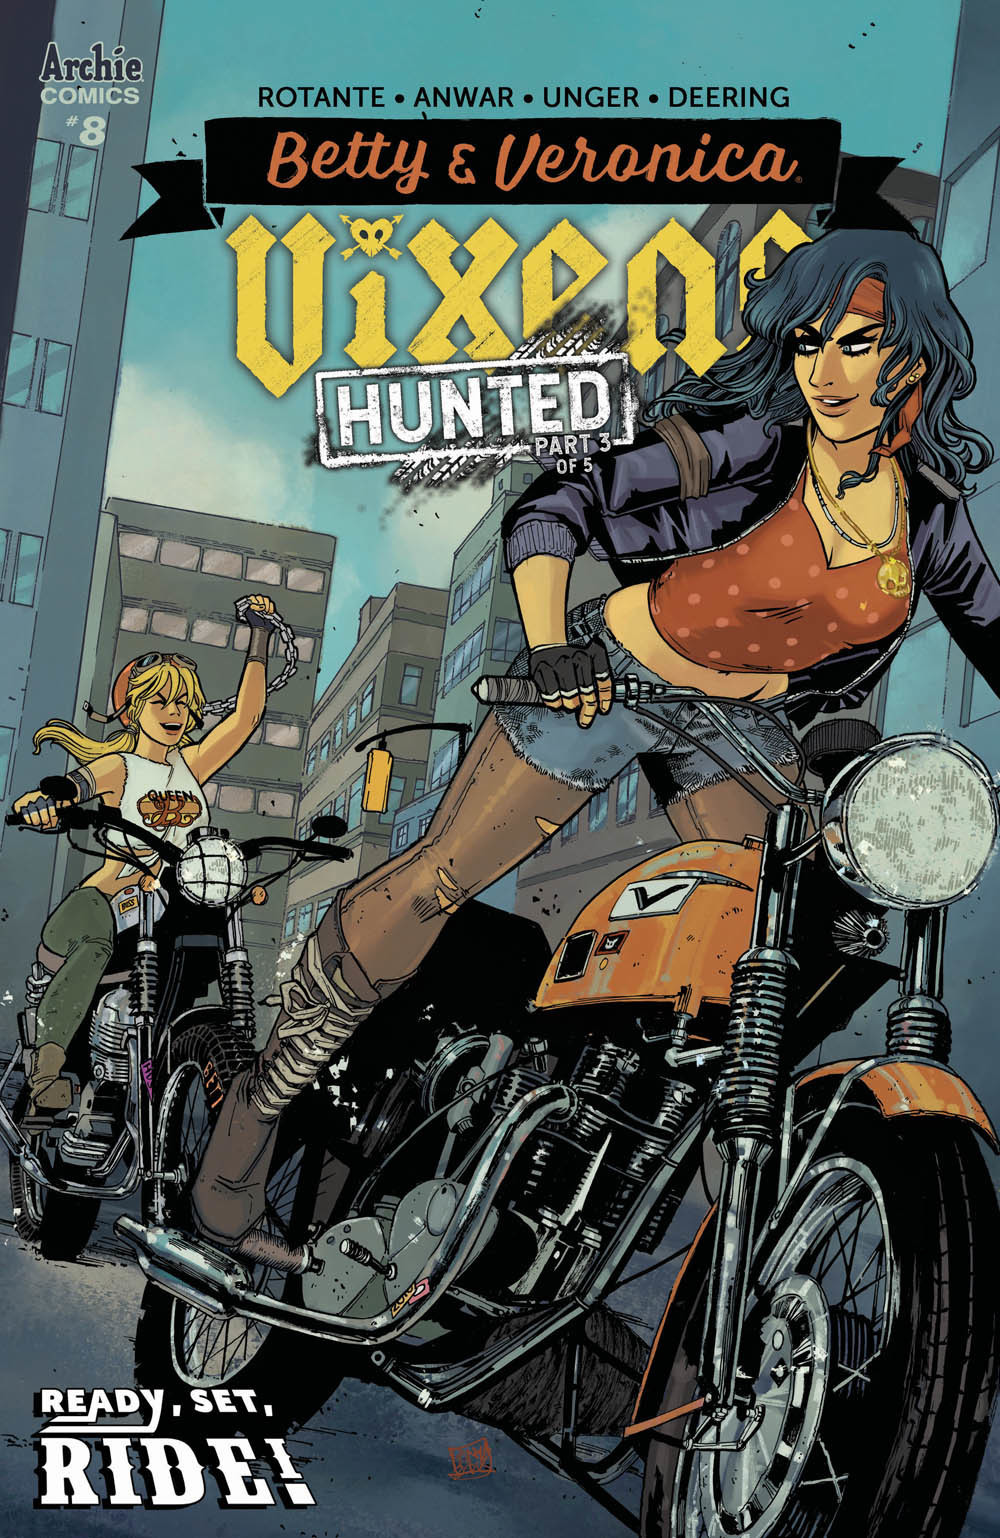 betty and veronica vixens 08 cover sanya anwar